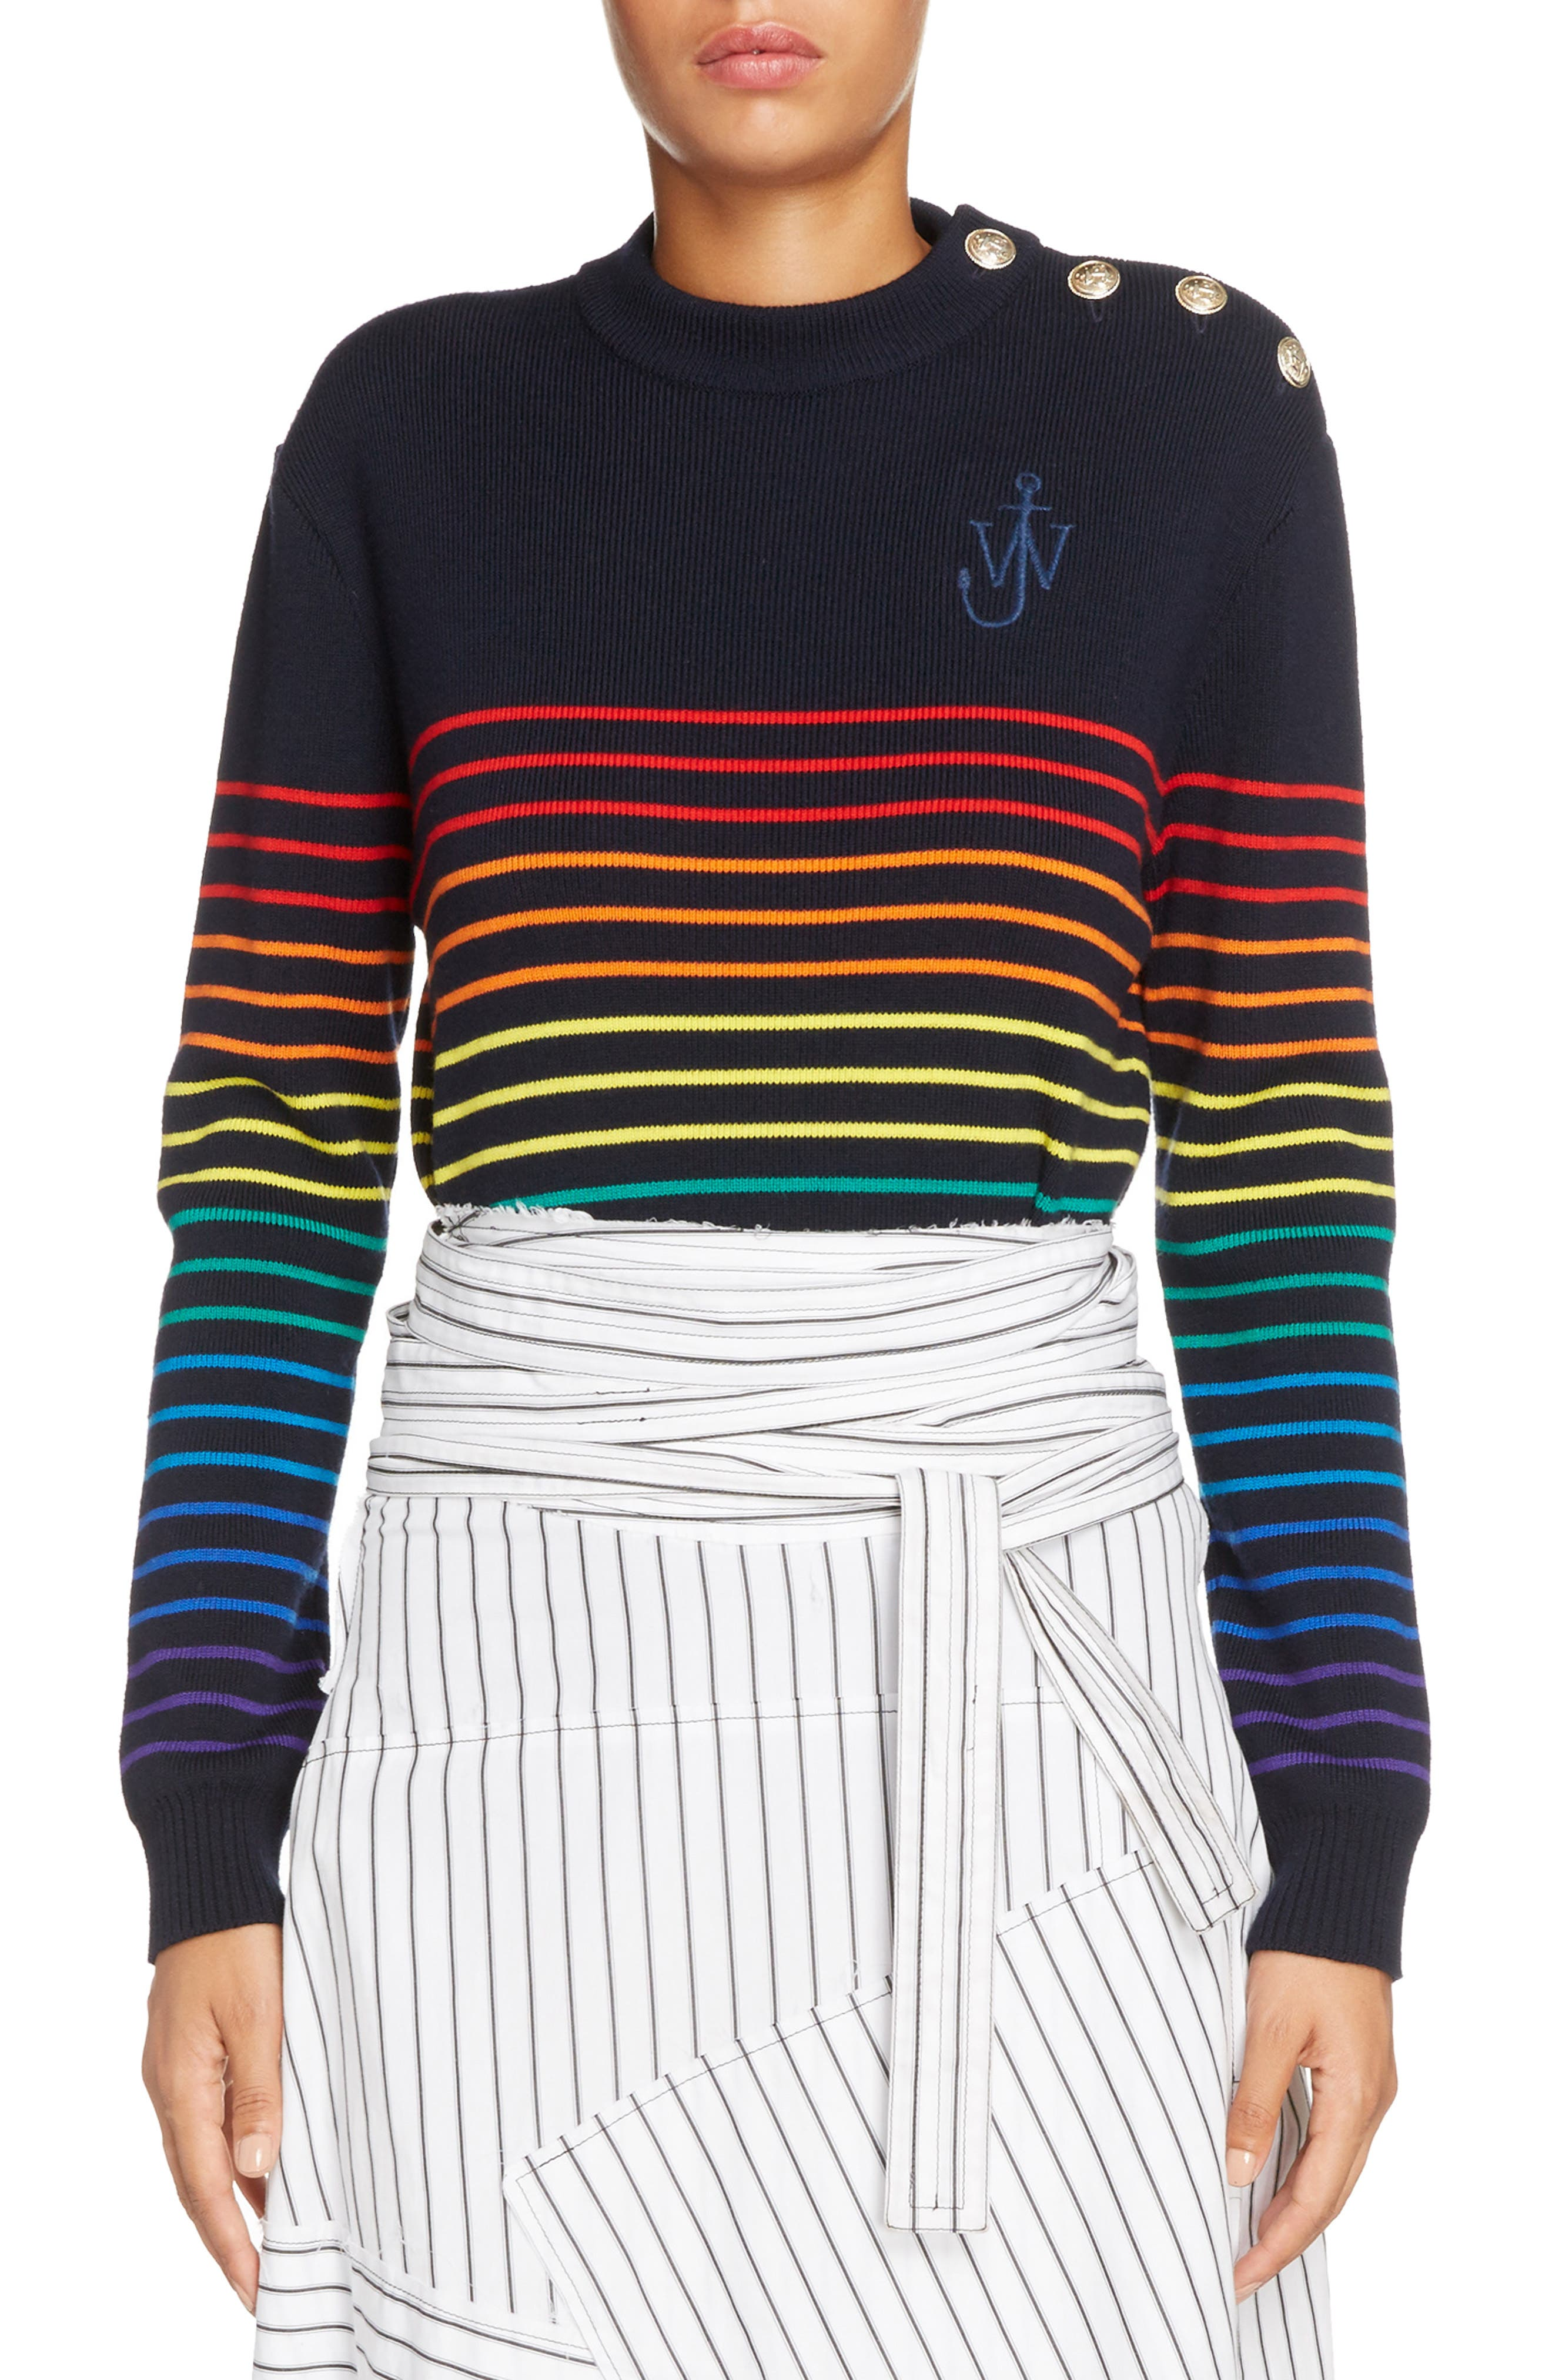 J.W.ANDERSON Marinière Stripe Wool Sweater